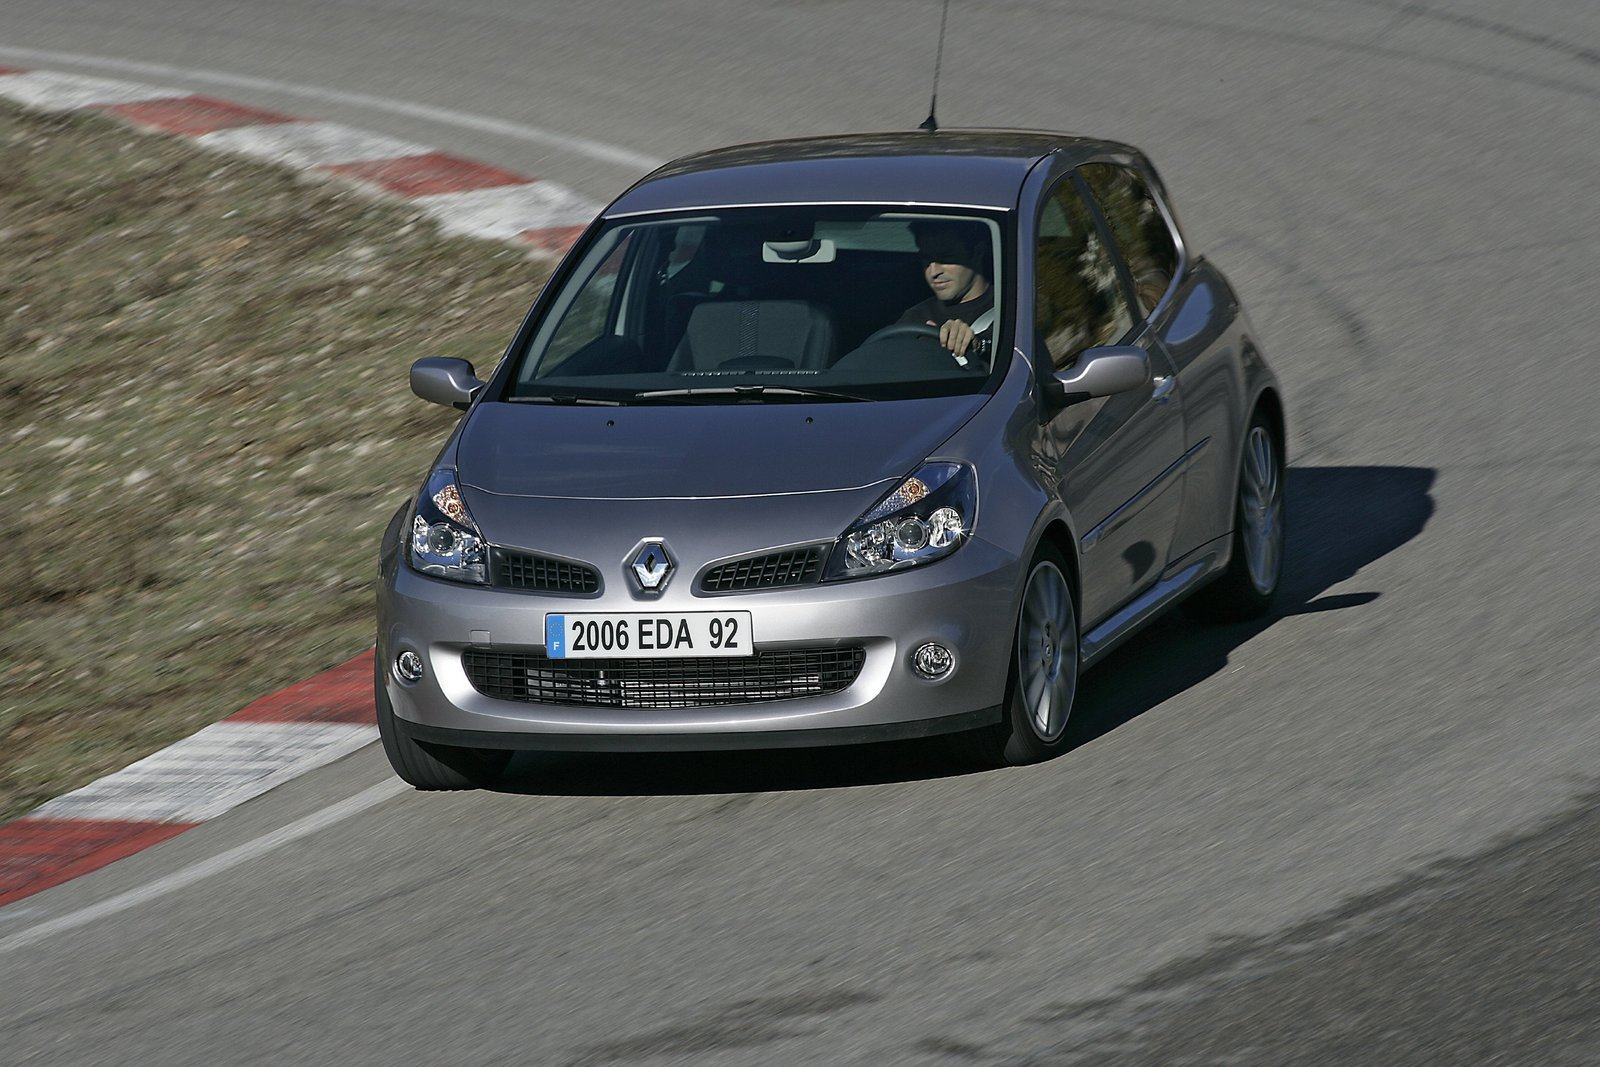 2006 renault clio sport picture 66726 car review top speed. Black Bedroom Furniture Sets. Home Design Ideas